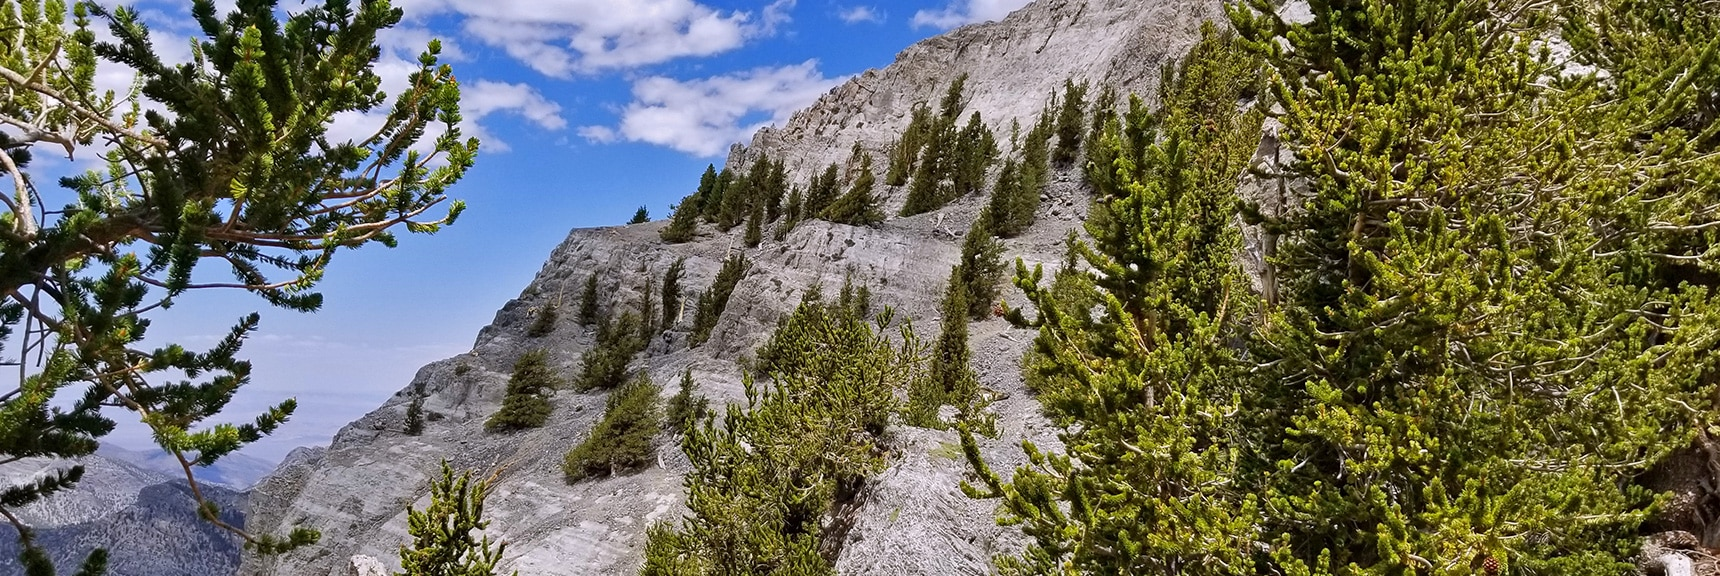 Approaching the Limit of Hiking Along the NW Cliffs. Serious Climbing Required Beyond This Point. | Mummy Mountain NW Cliffs | Mt Charleston Wilderness | Spring Mountains, Nevada